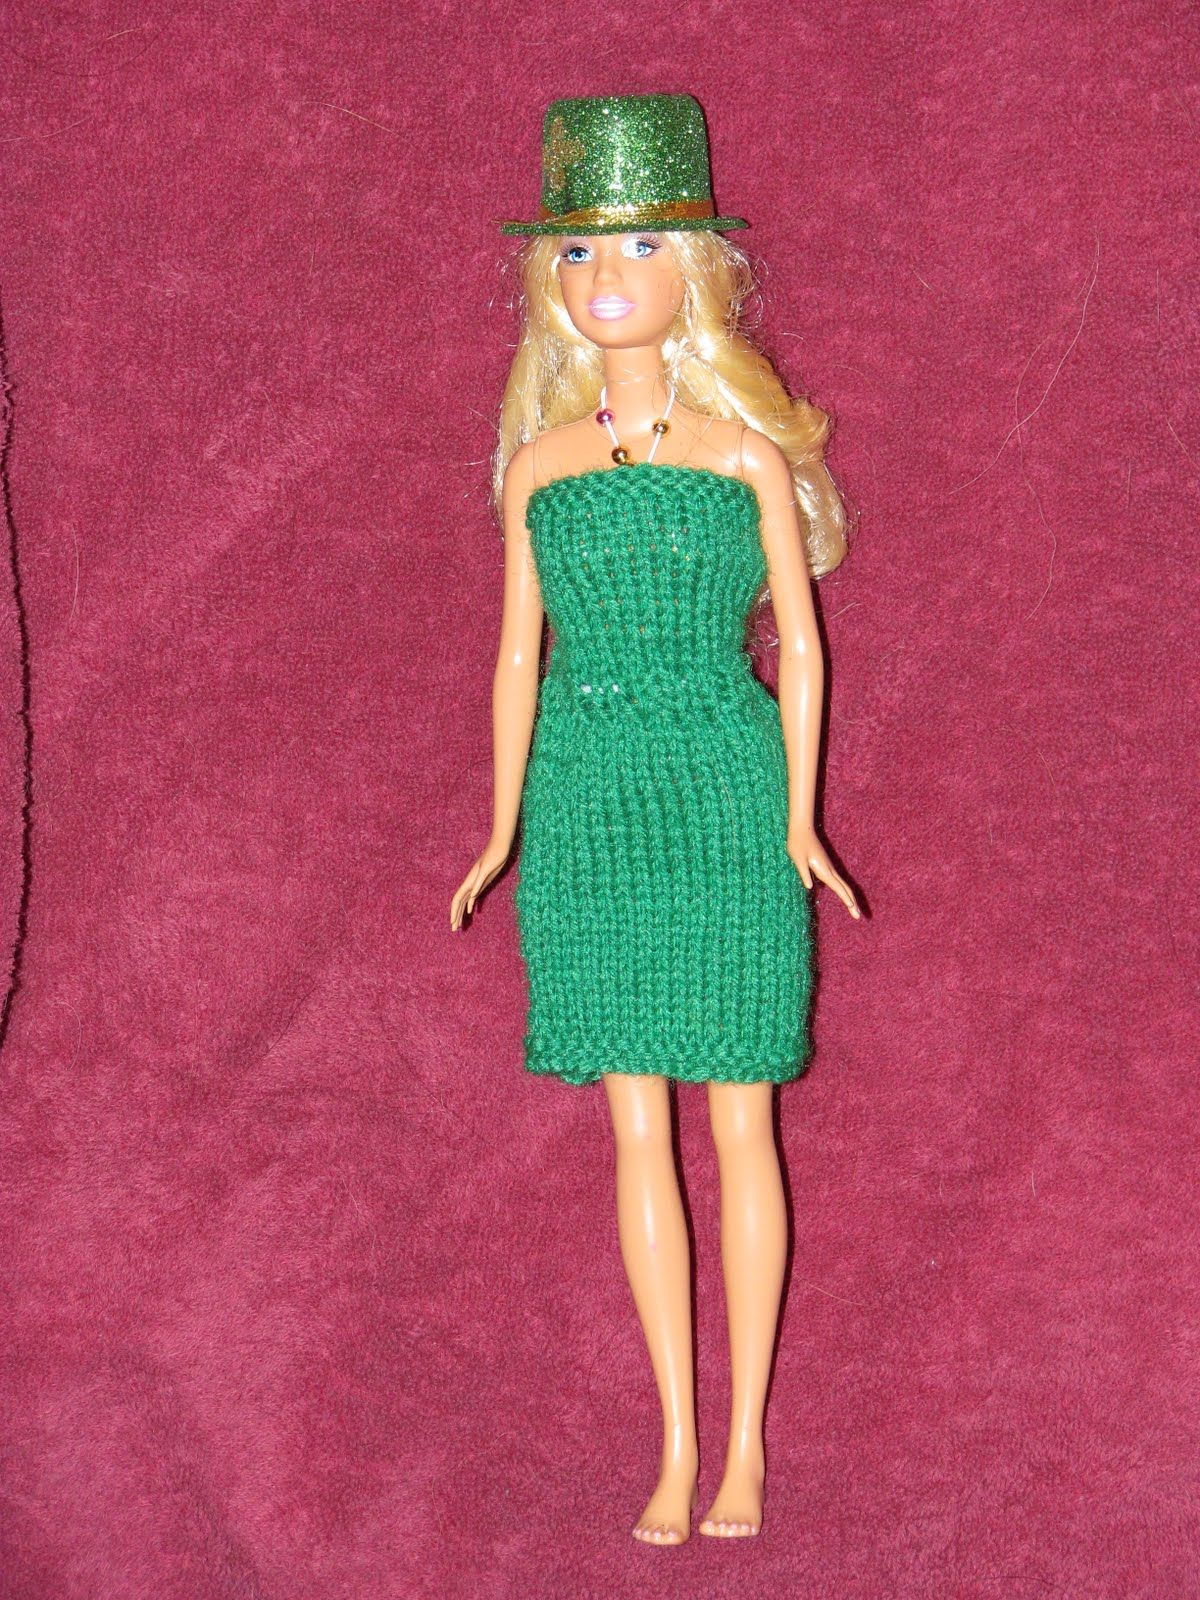 Barbie sew free fashions 7